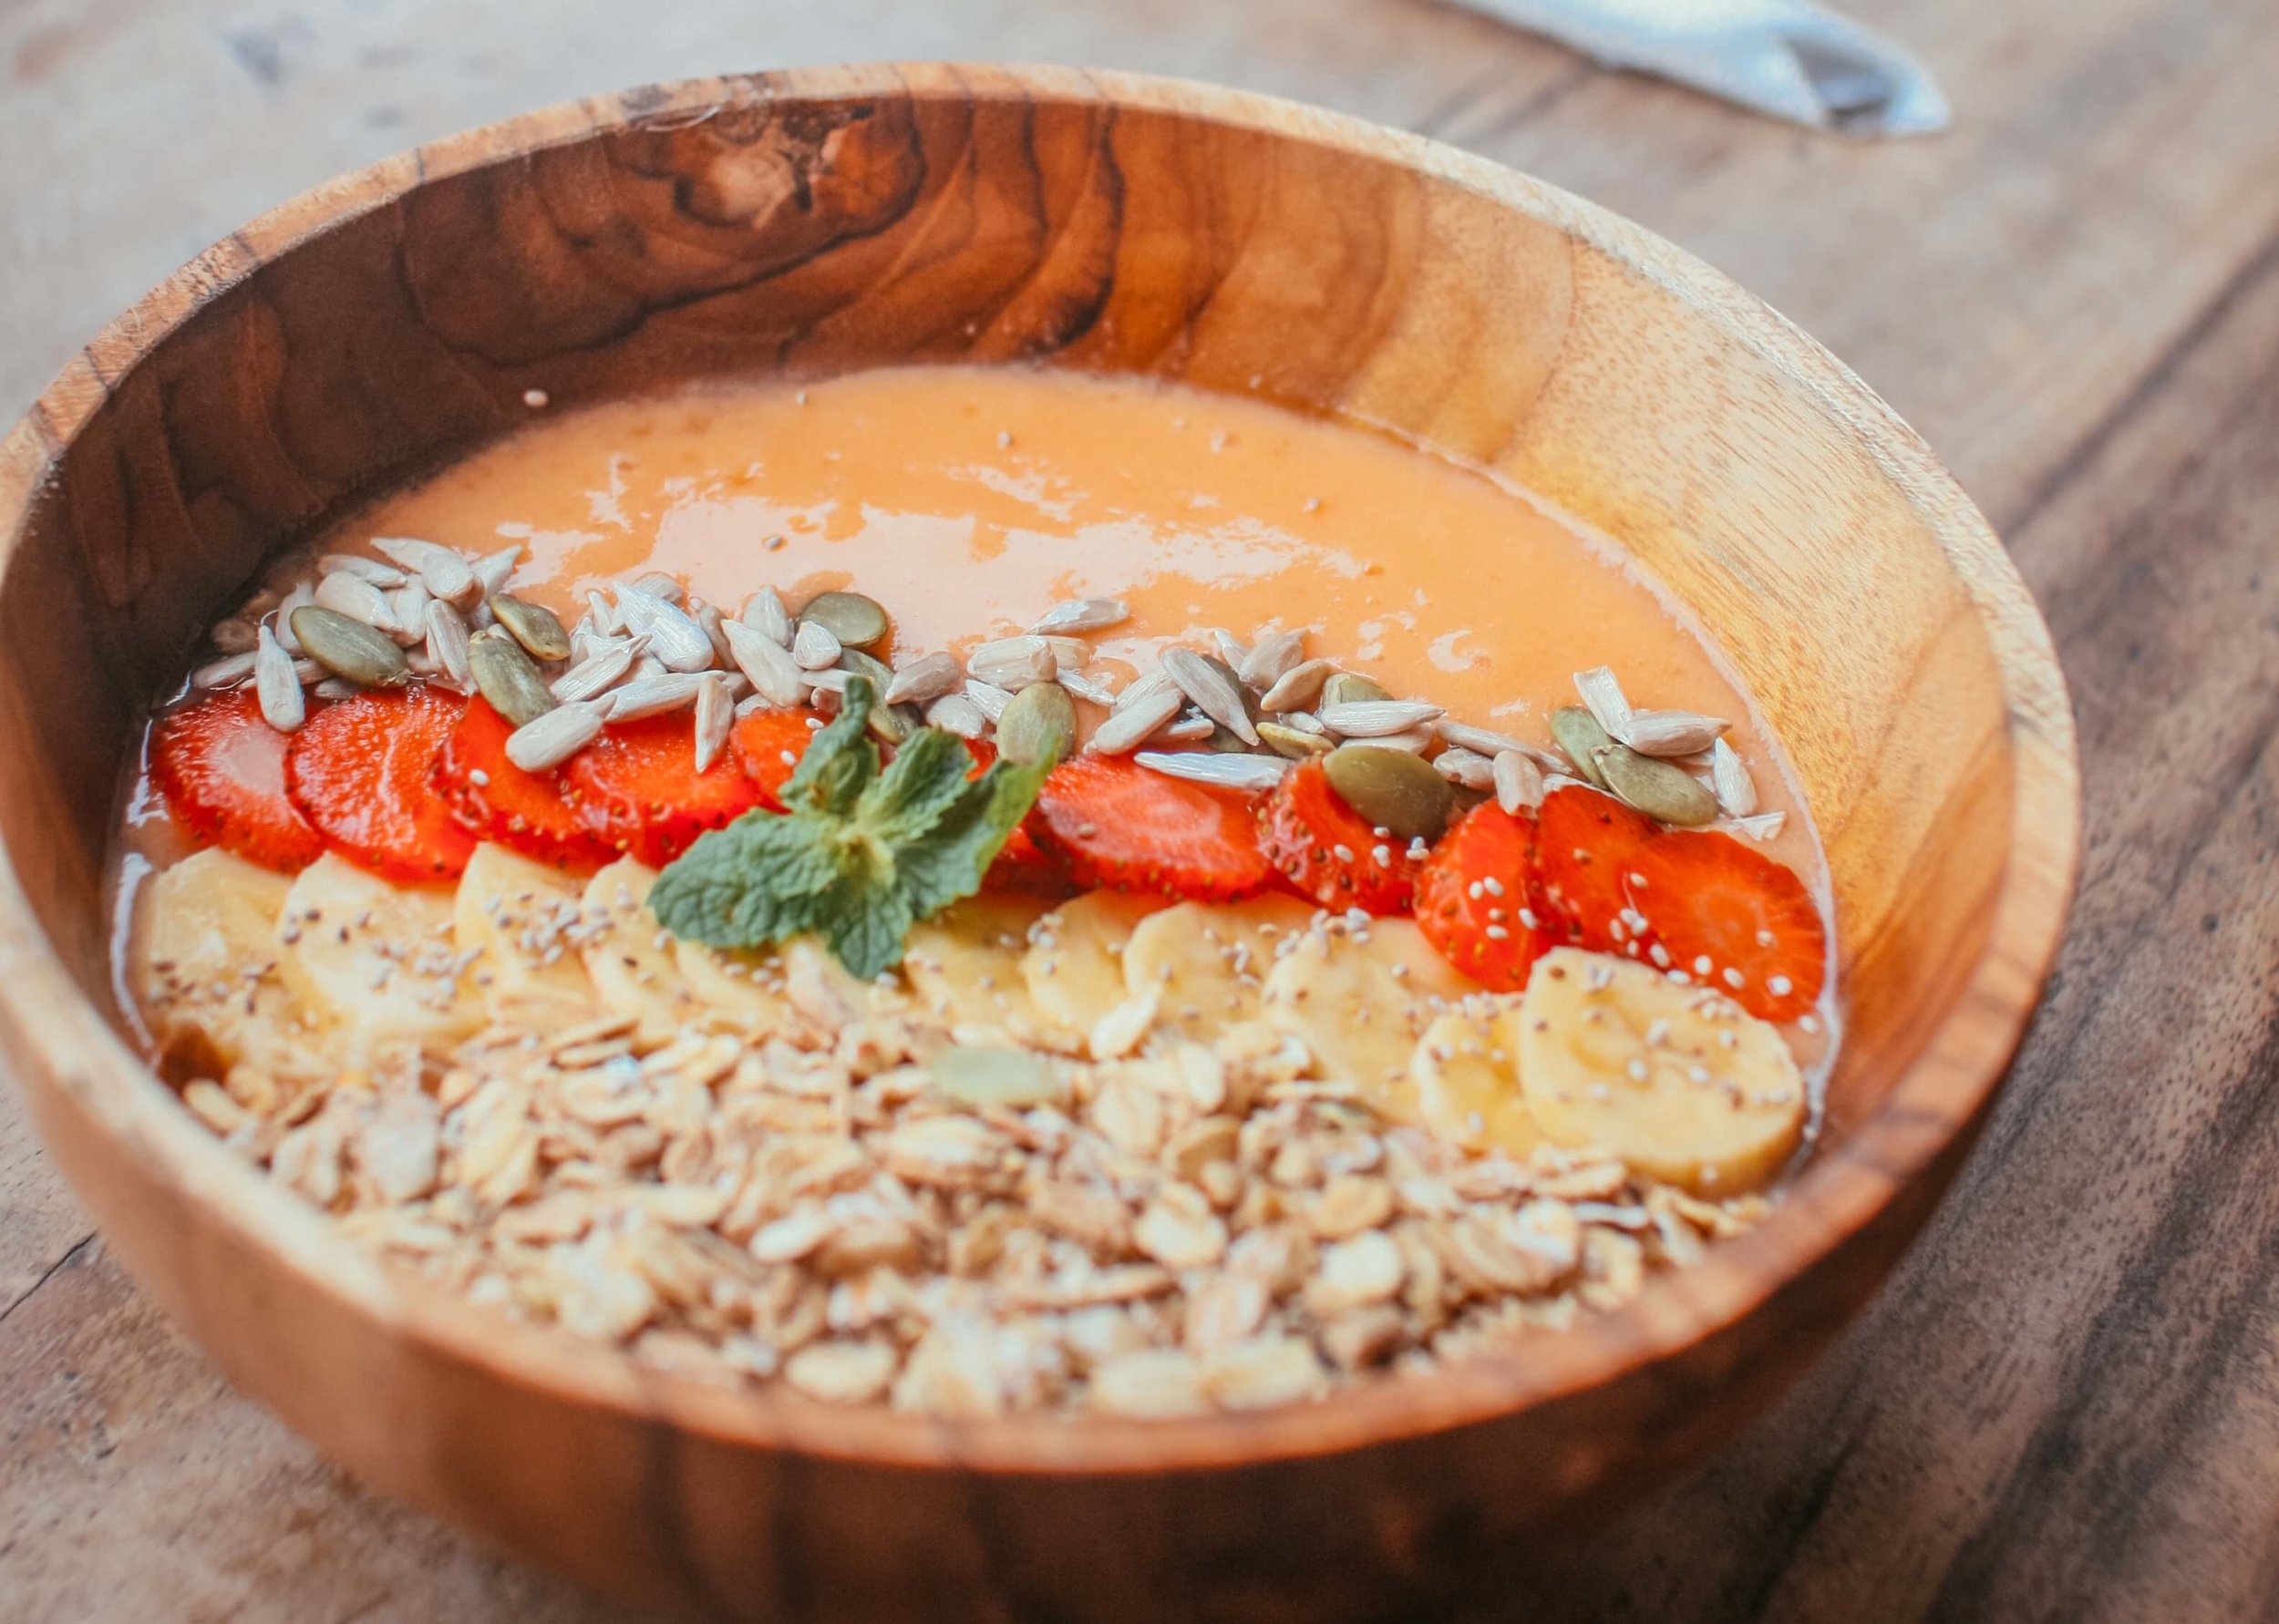 food-your-thouht-smoothiebowl